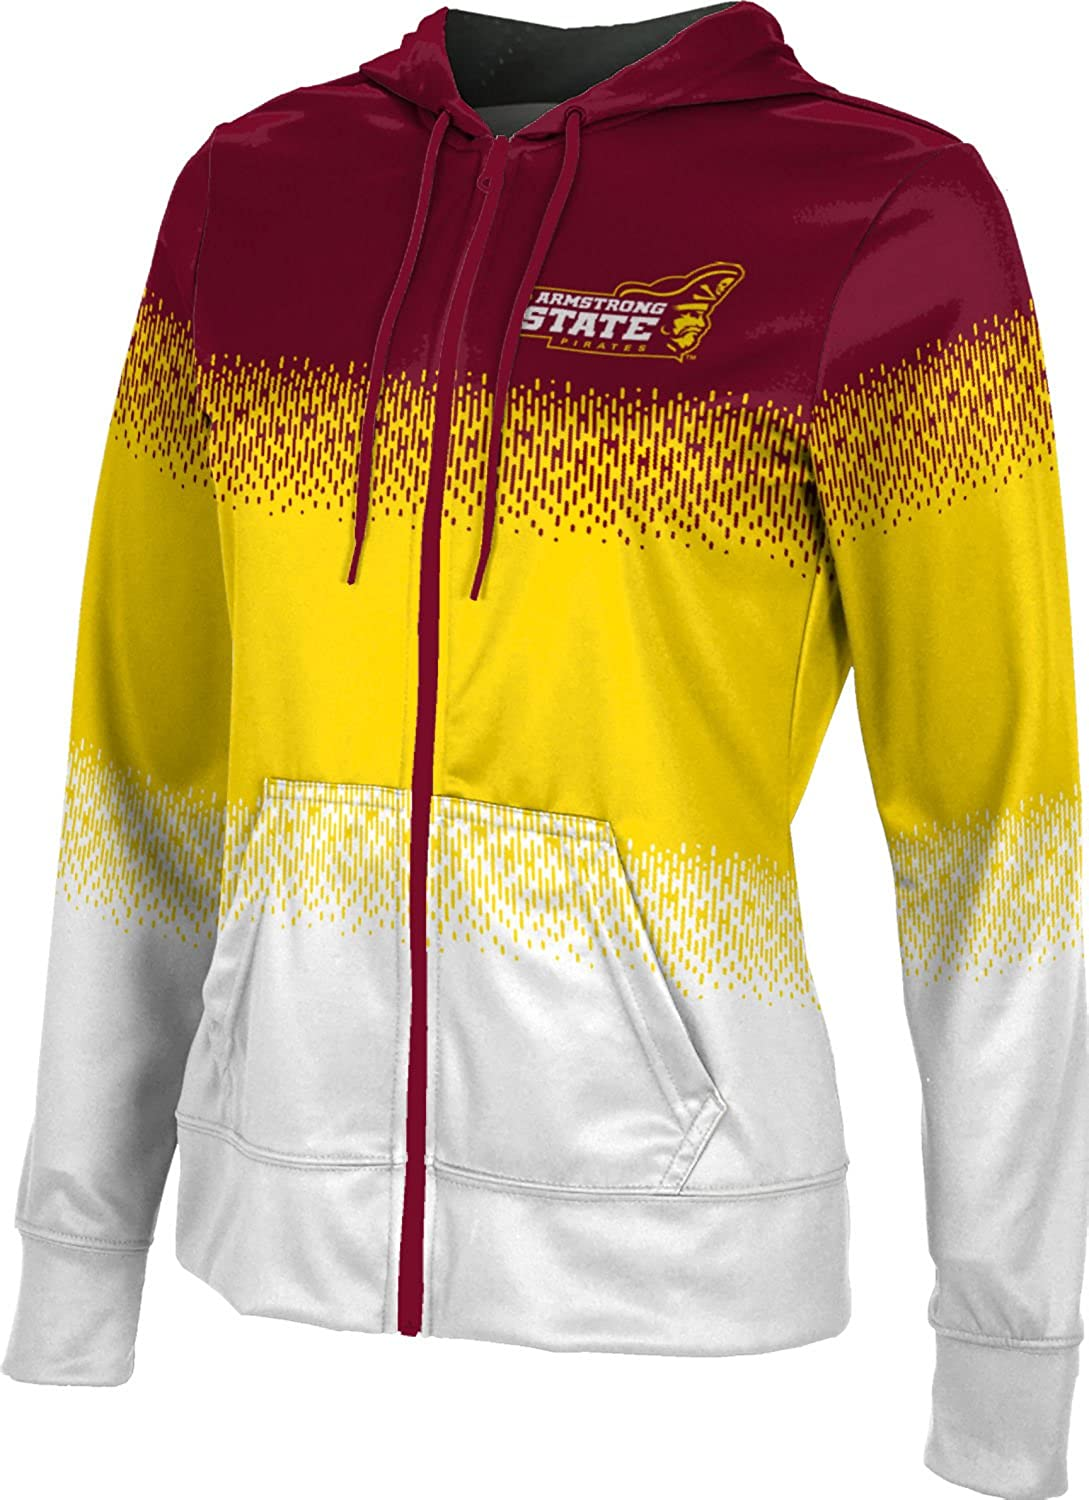 Drip School Spirit Sweatshirt ProSphere Armstrong State University Girls Zipper Hoodie